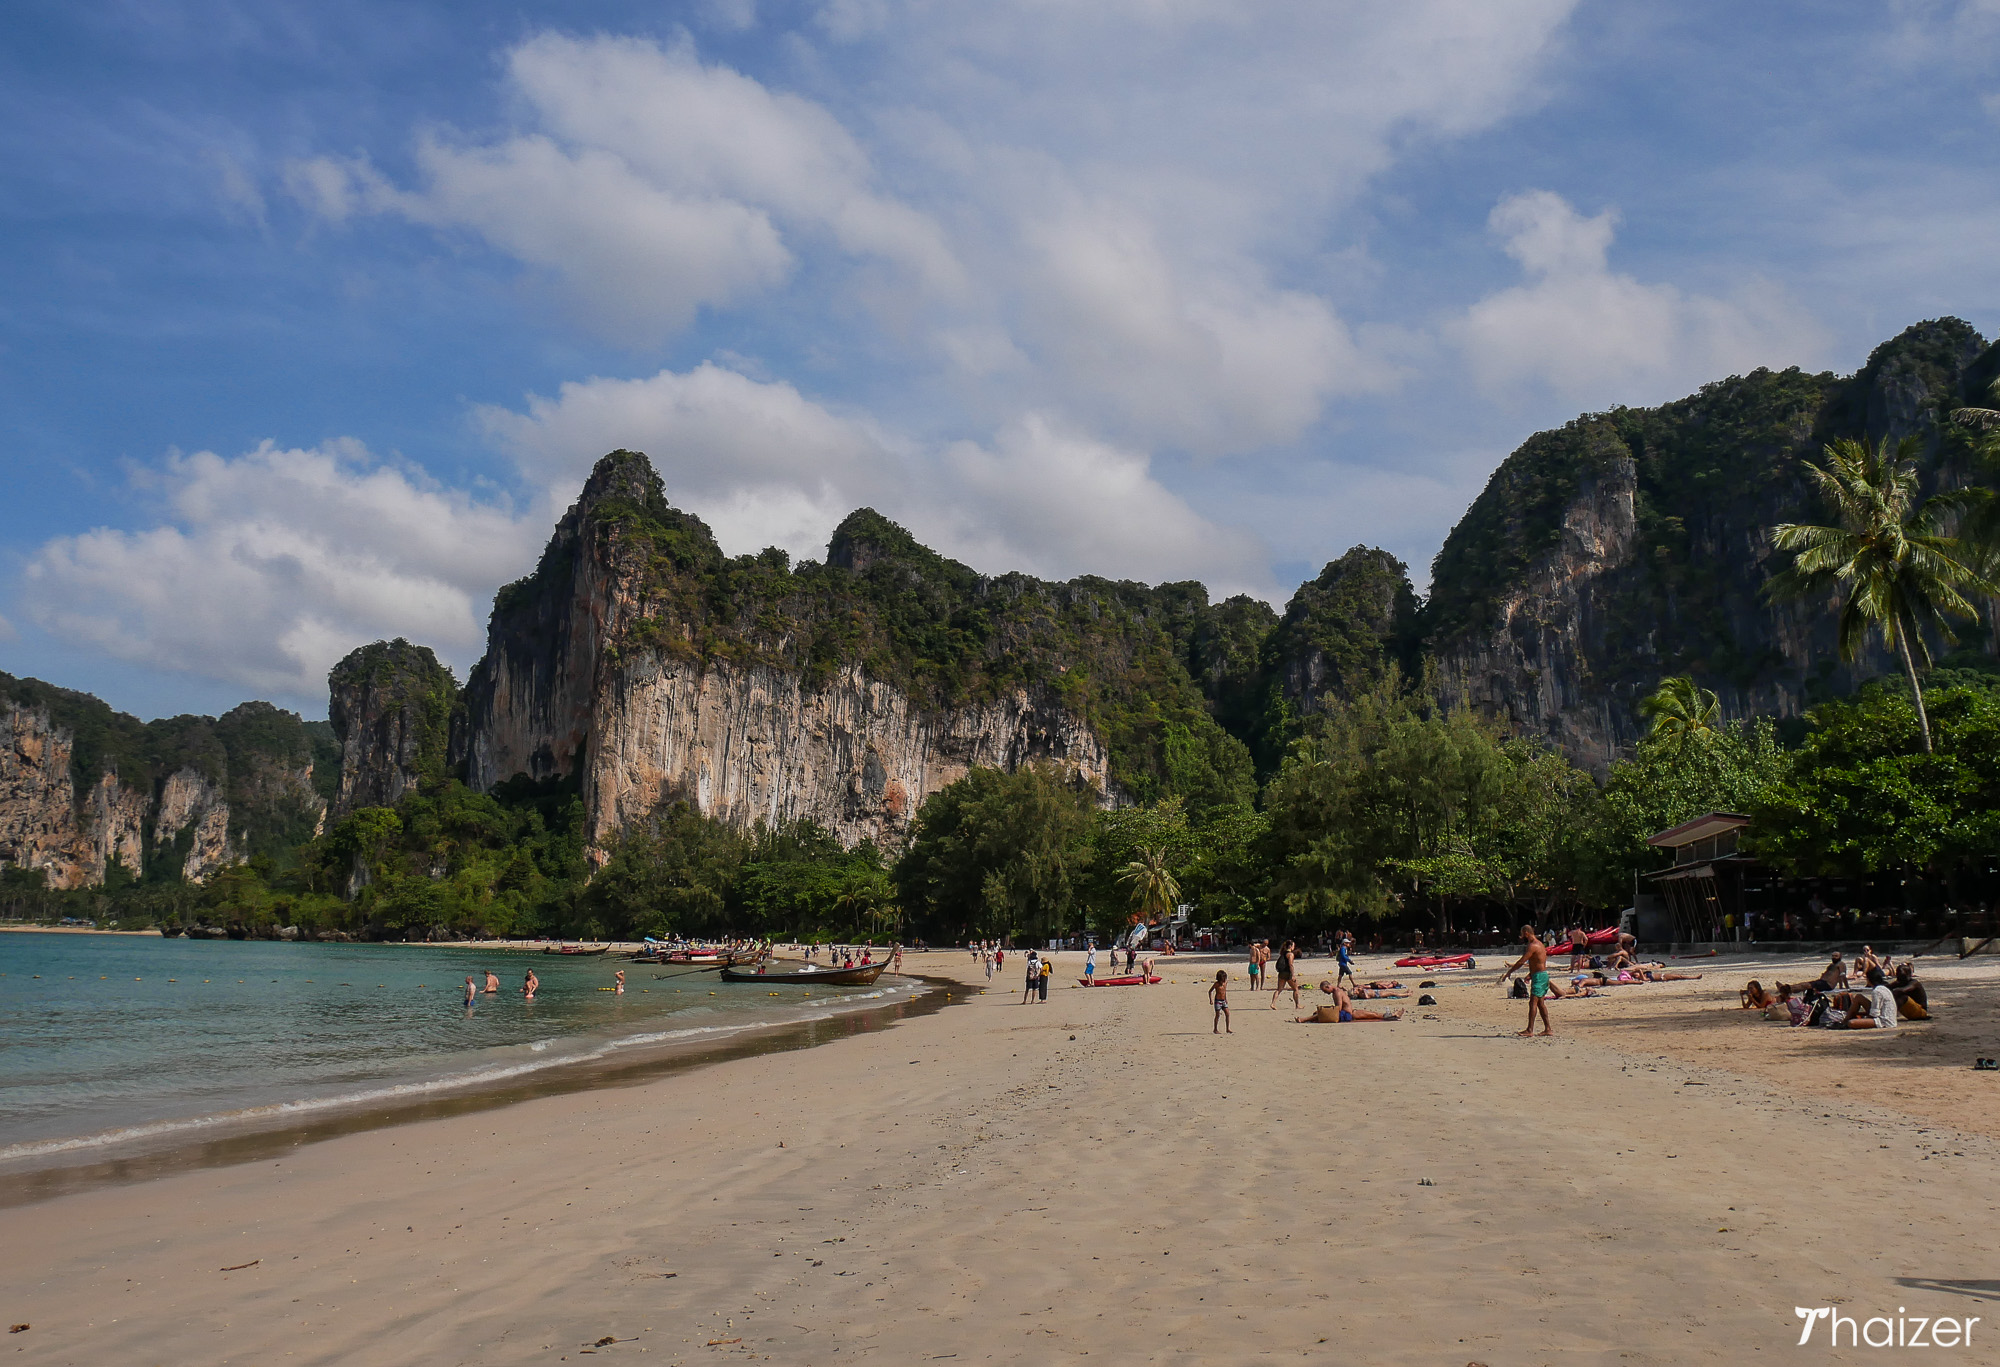 visiting-railay-beach-krabi-2 Visiting Railay Beach, Krabi